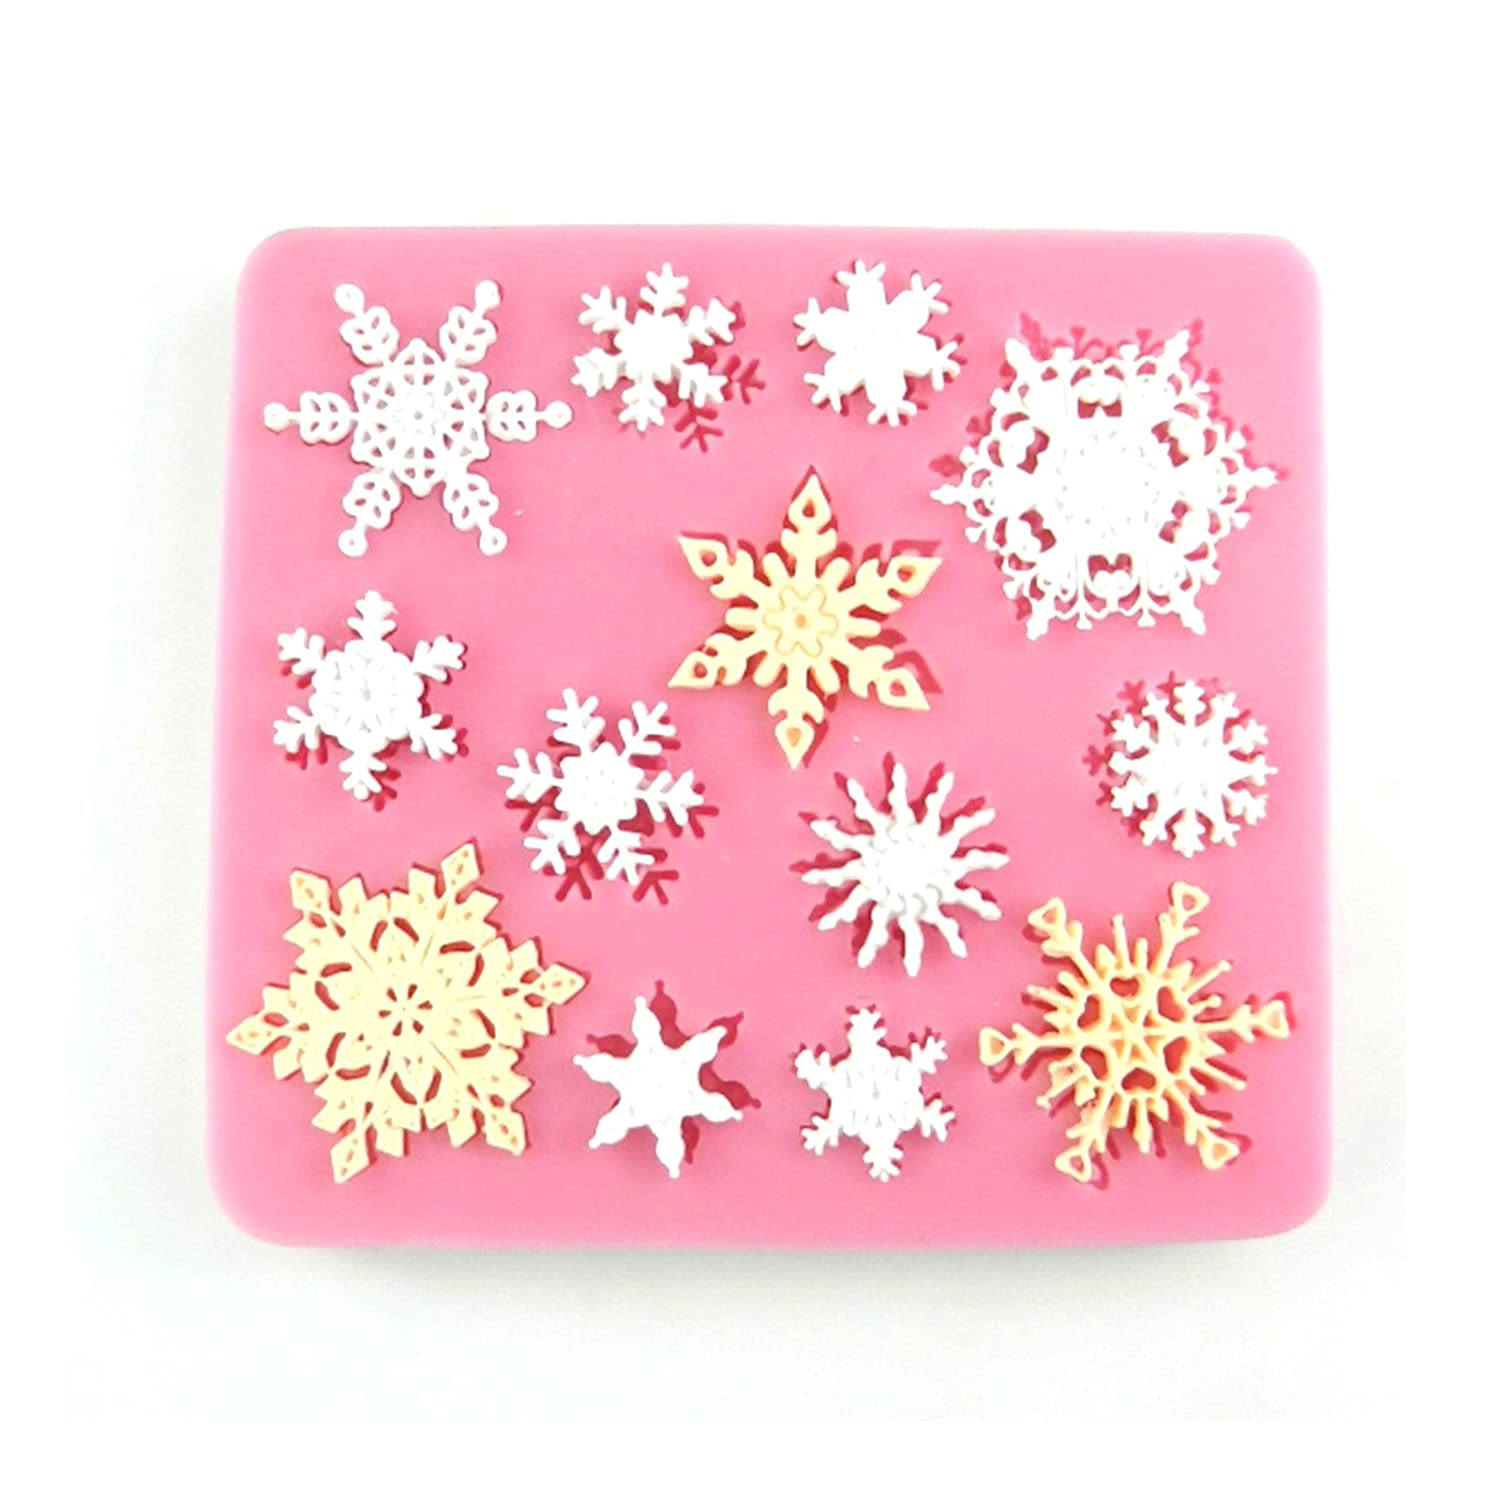 Sugarcraft Silicone Mold Fondant Clay Mould Snowflake Shape 3D Chocolate DIY Decorating Tool pqusno